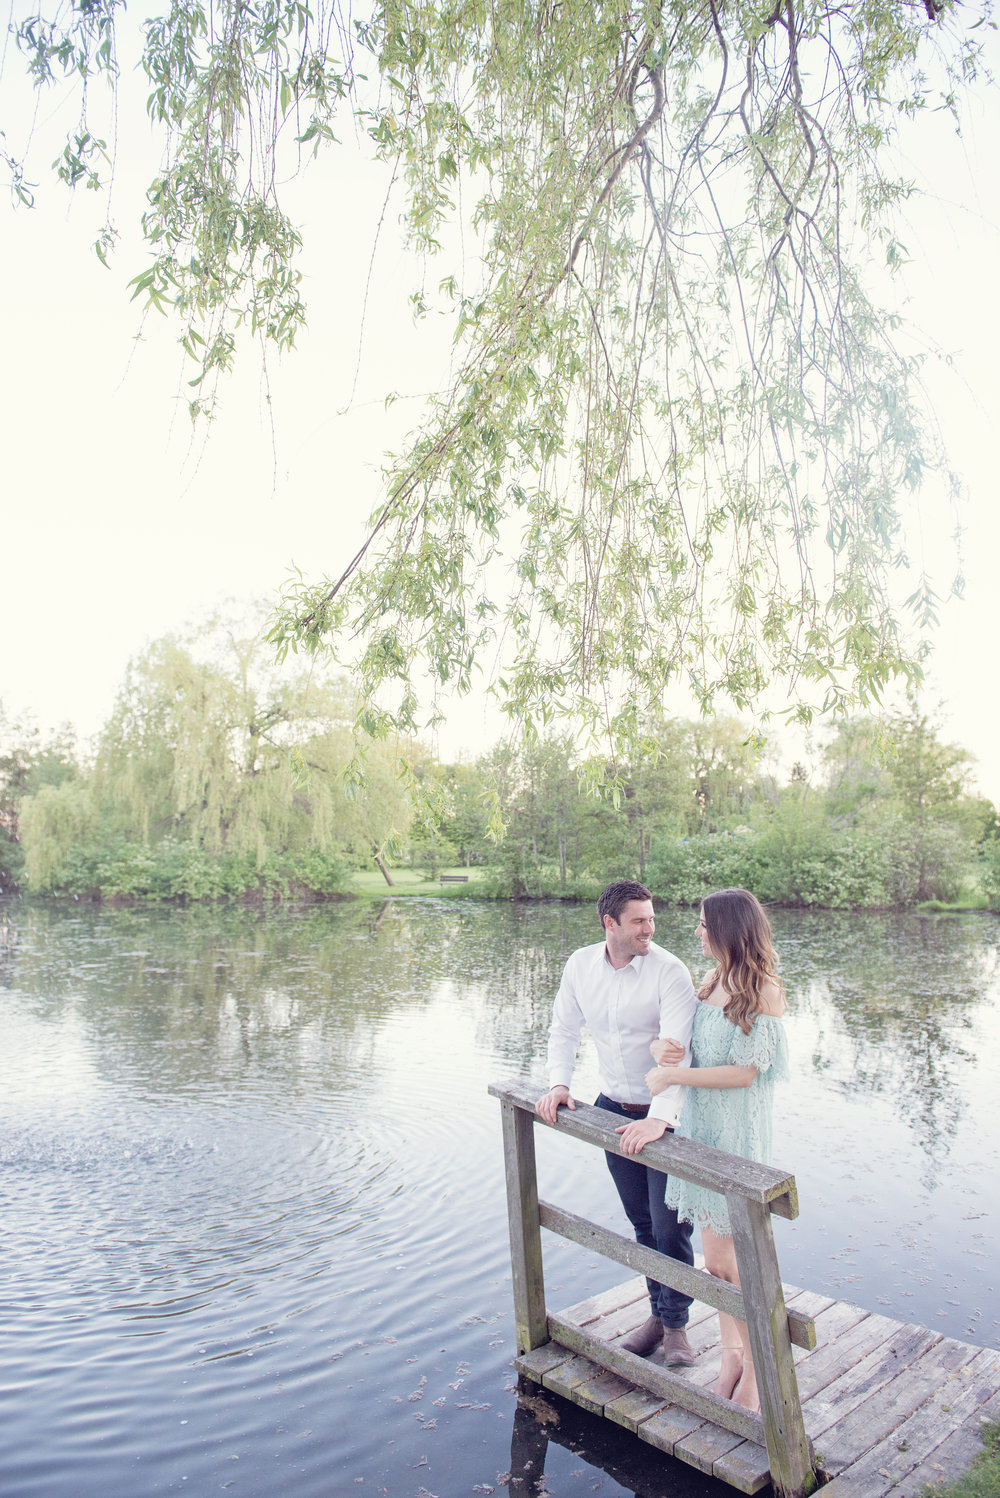 paula_ryan_engagement-170.jpg